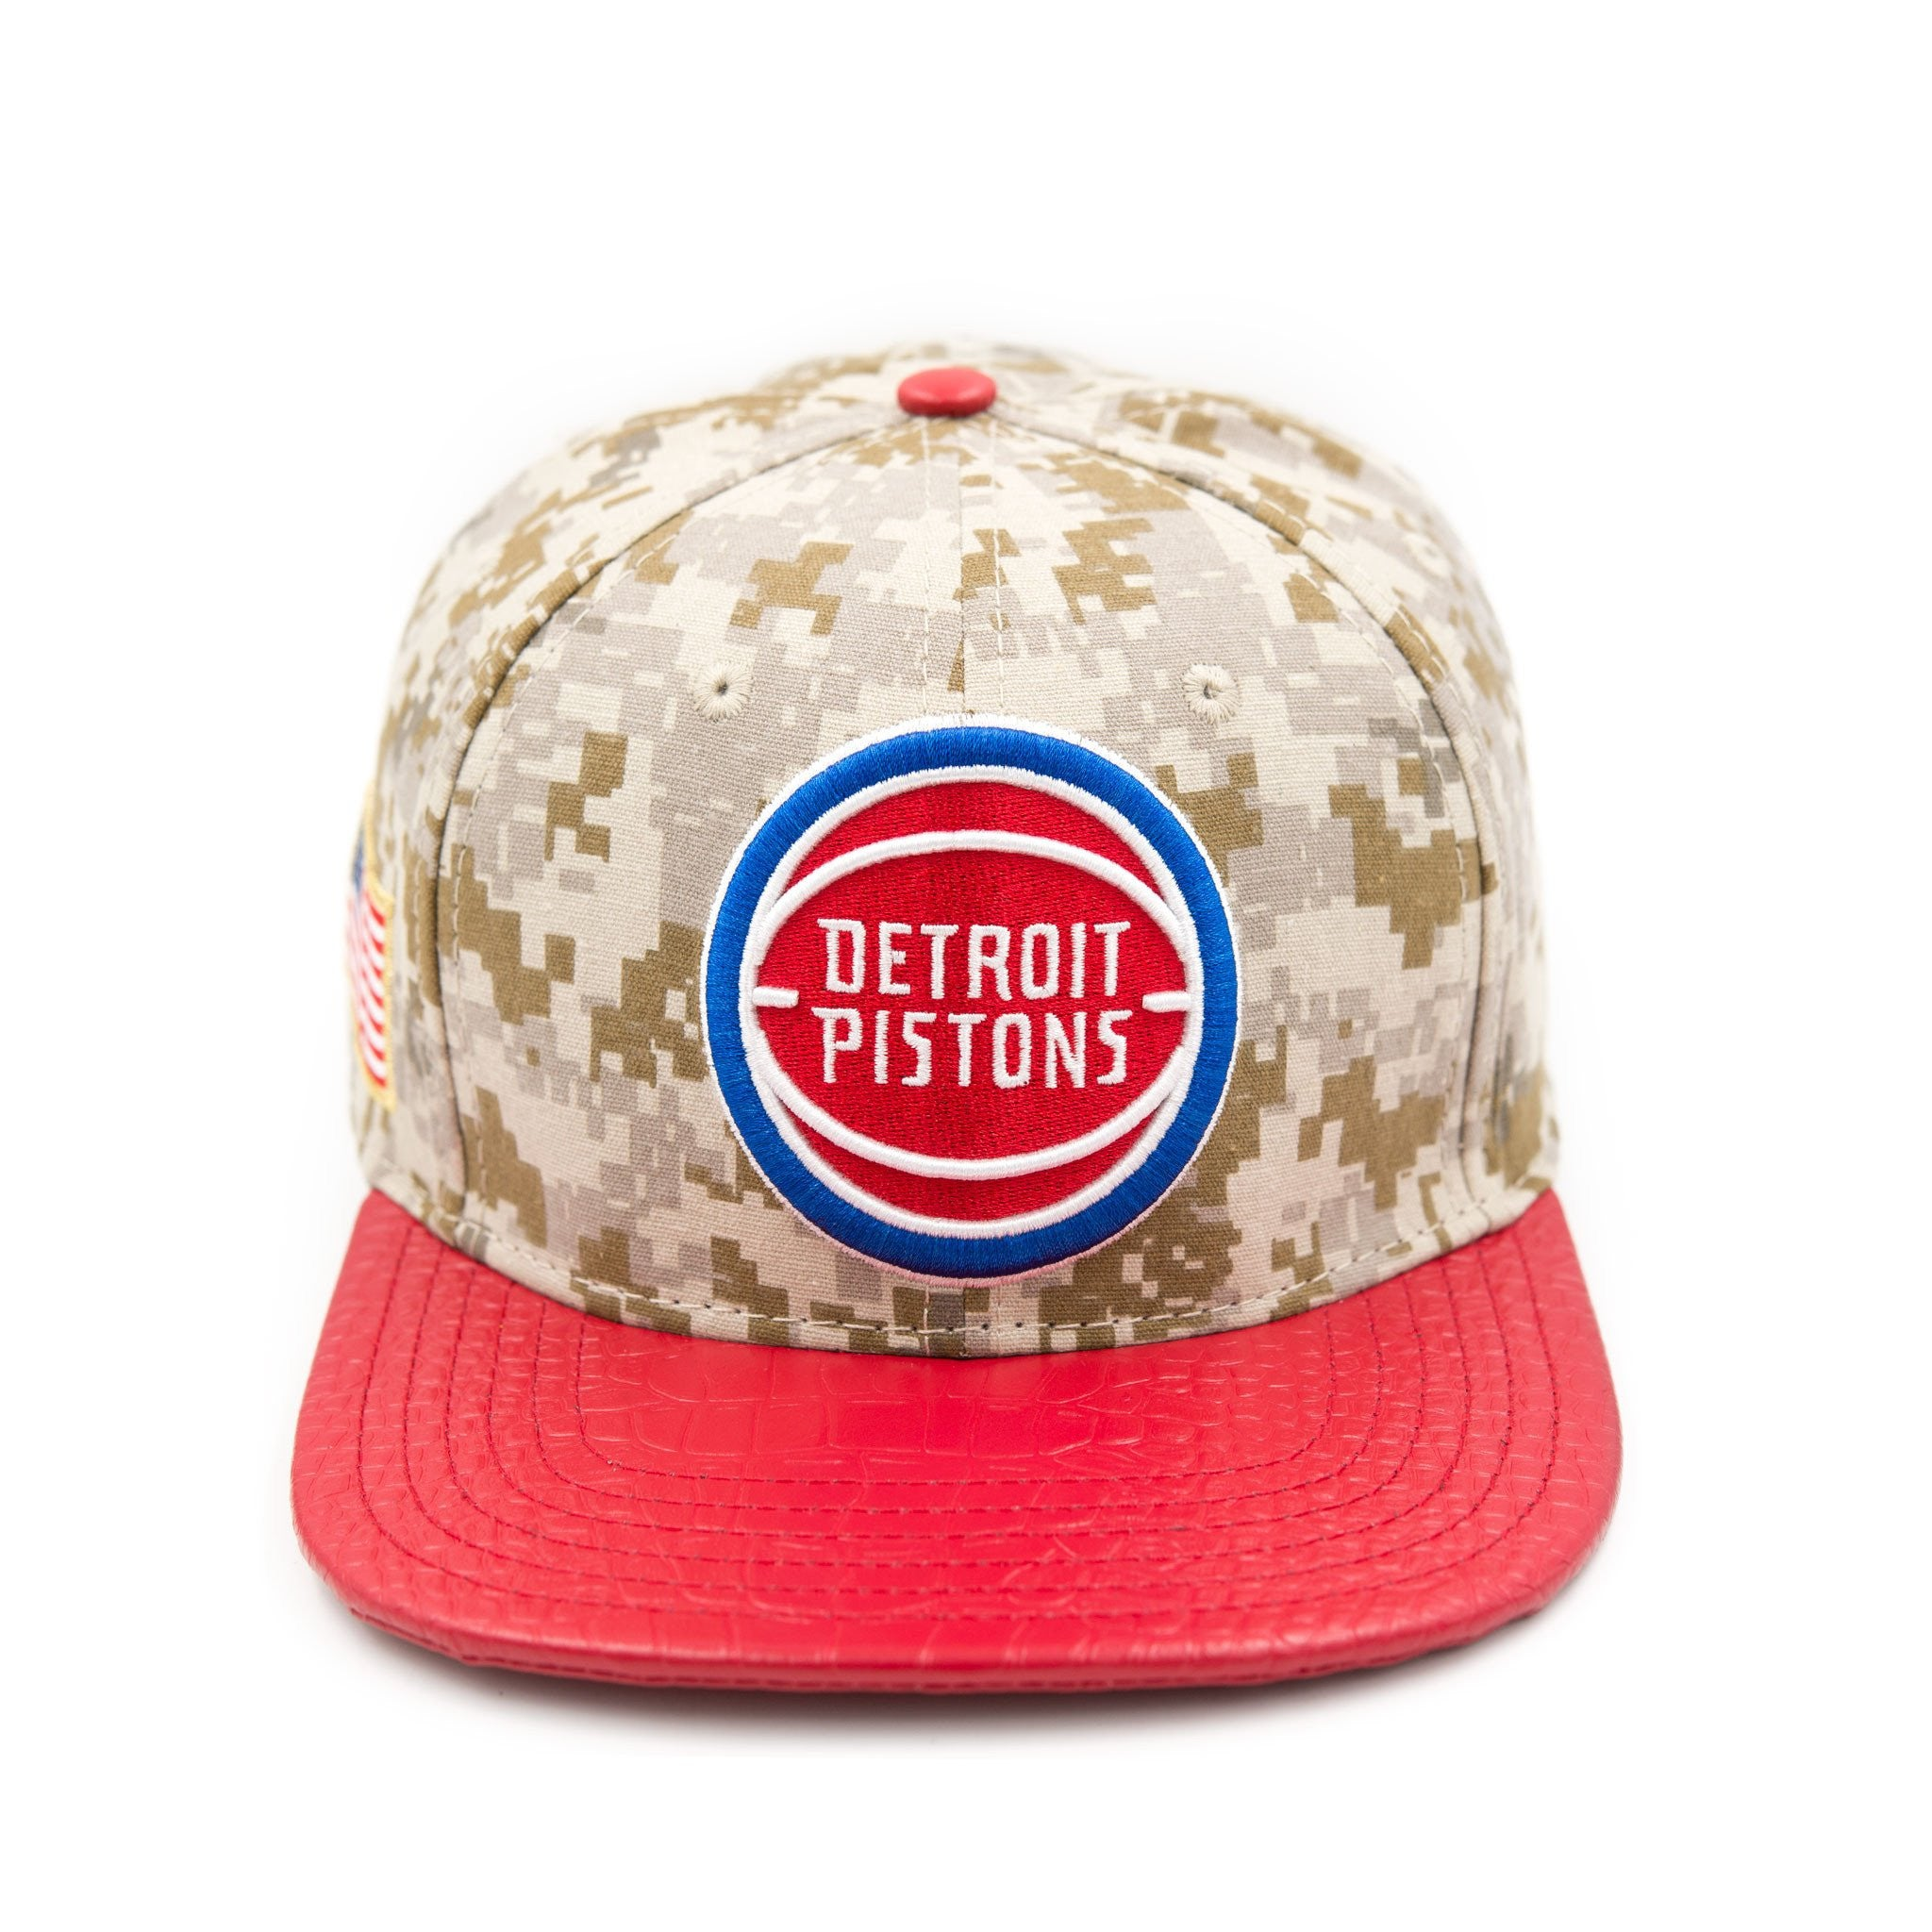 DETROIT PISTONS RETRO TEAM LOGO W/ 2 GOLD PINS DIGI CAMO